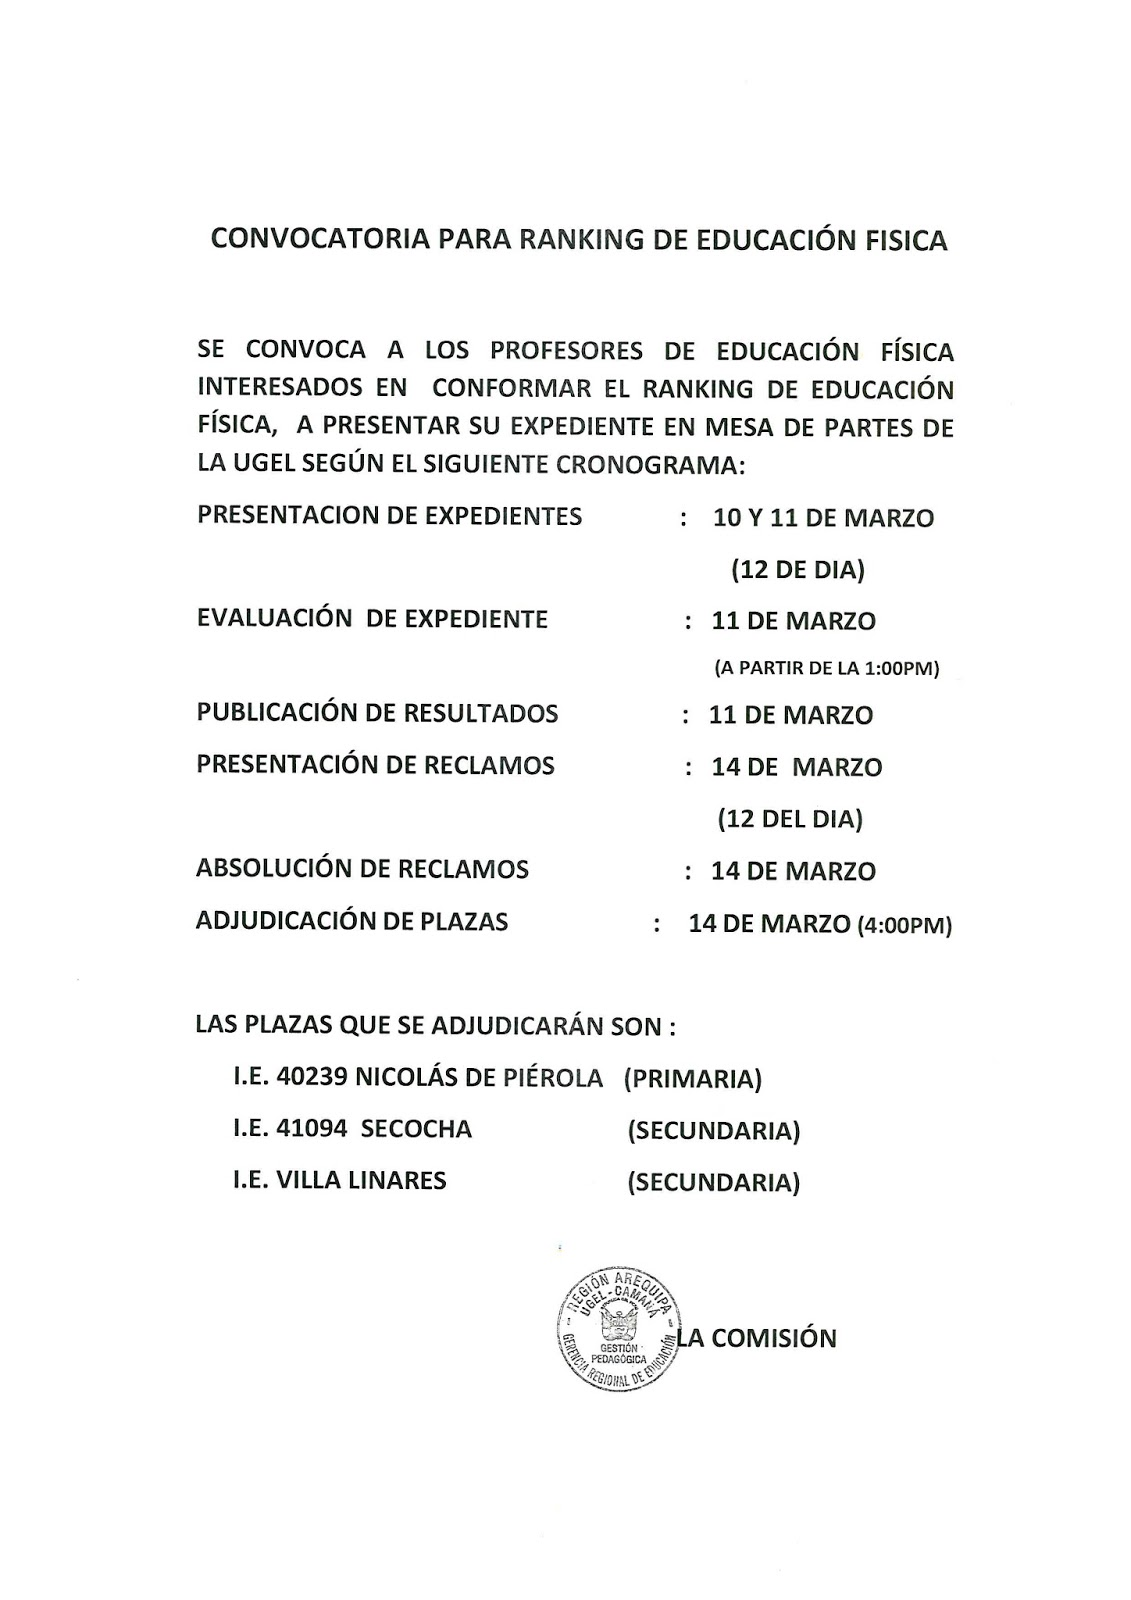 Convocatoria para plaza de educaci n f sica ugel caman for Convocatoria plazas docentes 2016